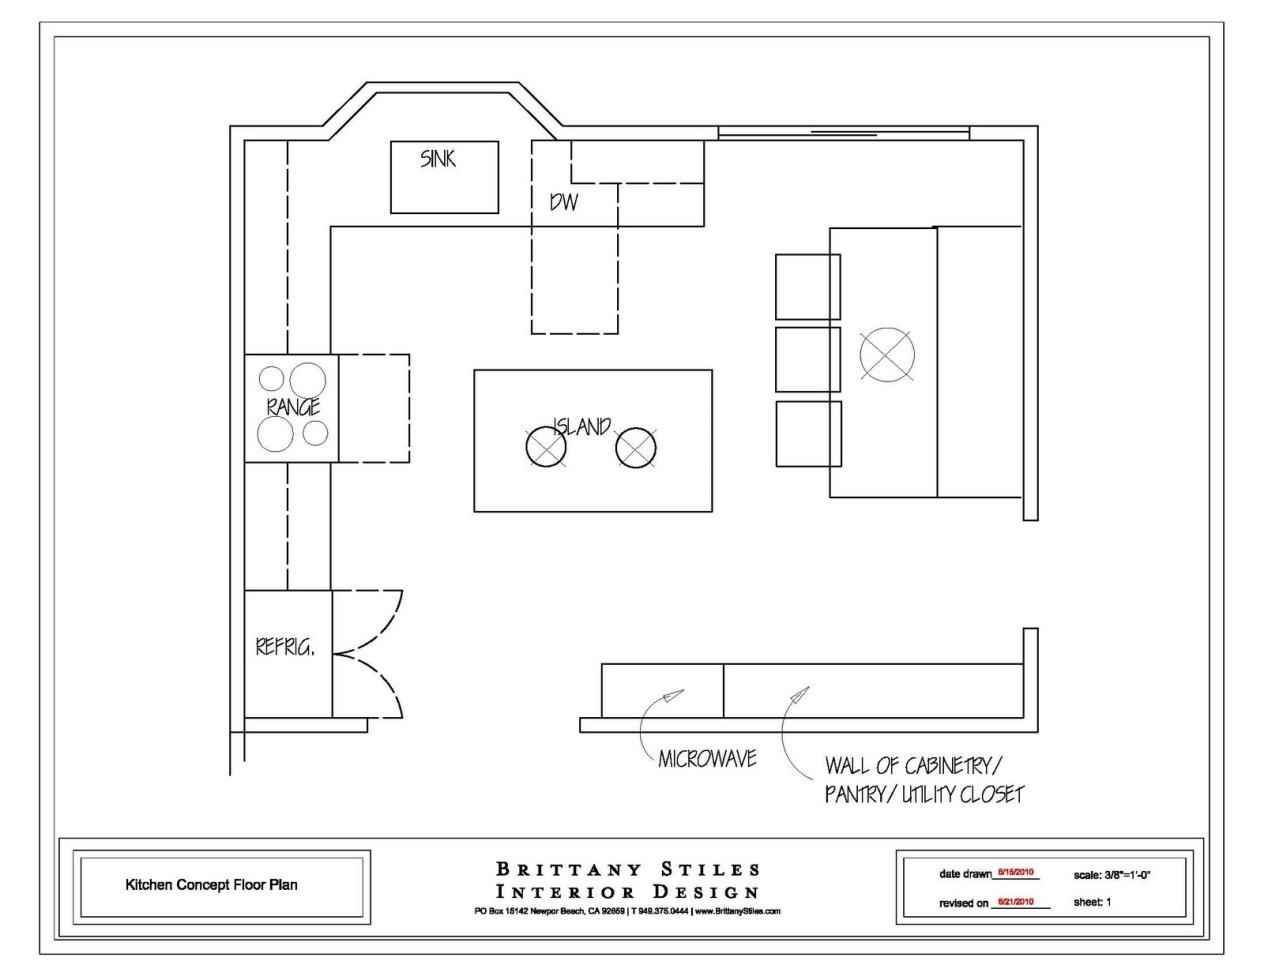 detailed review of all kitchen floor plans.  schematic plan of the l PBPRIJW